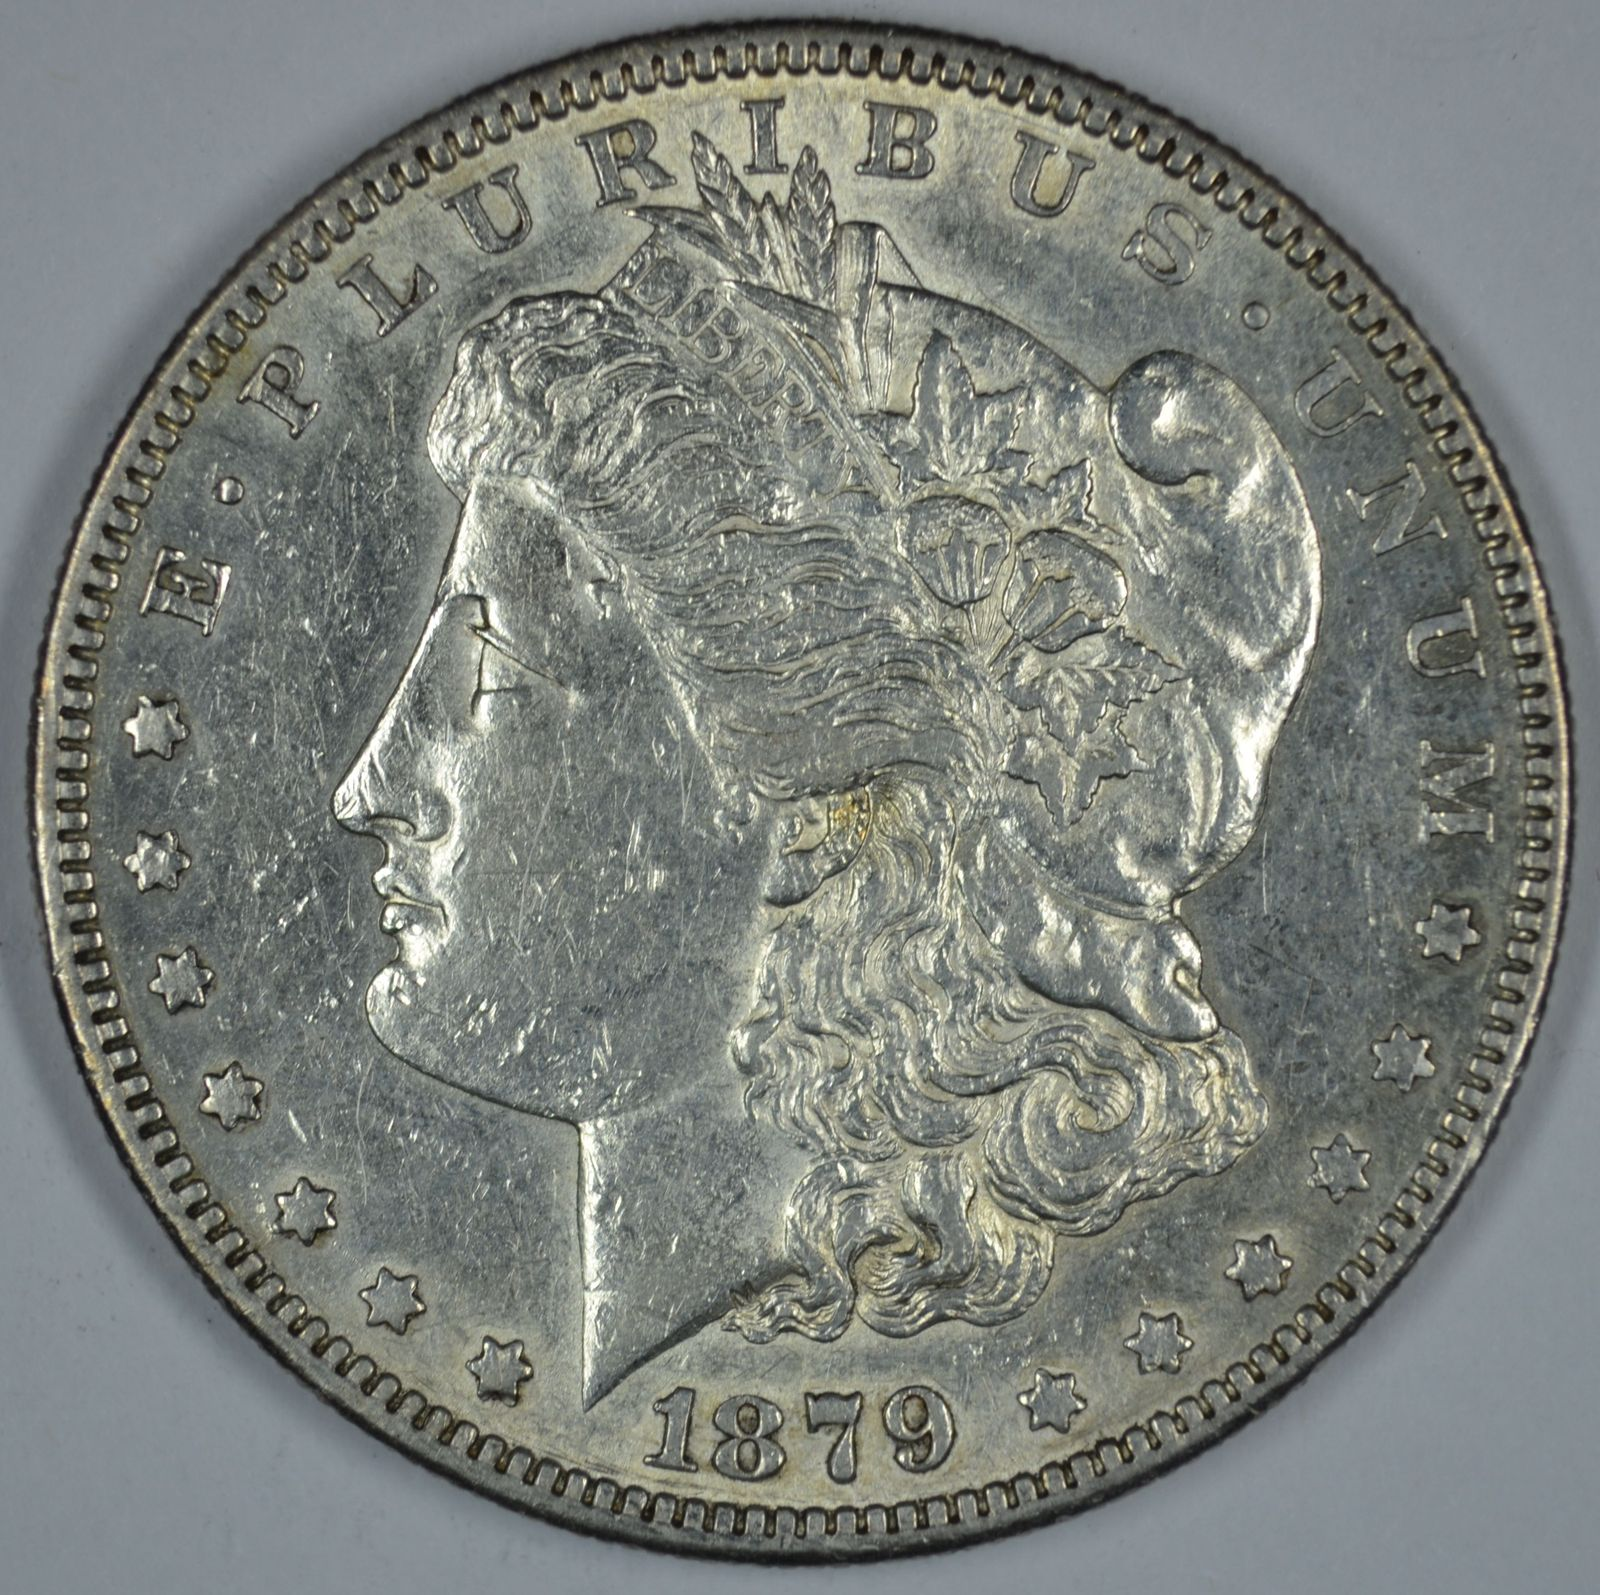 Primary image for 1879 S Morgan circulated silver dollar AU details